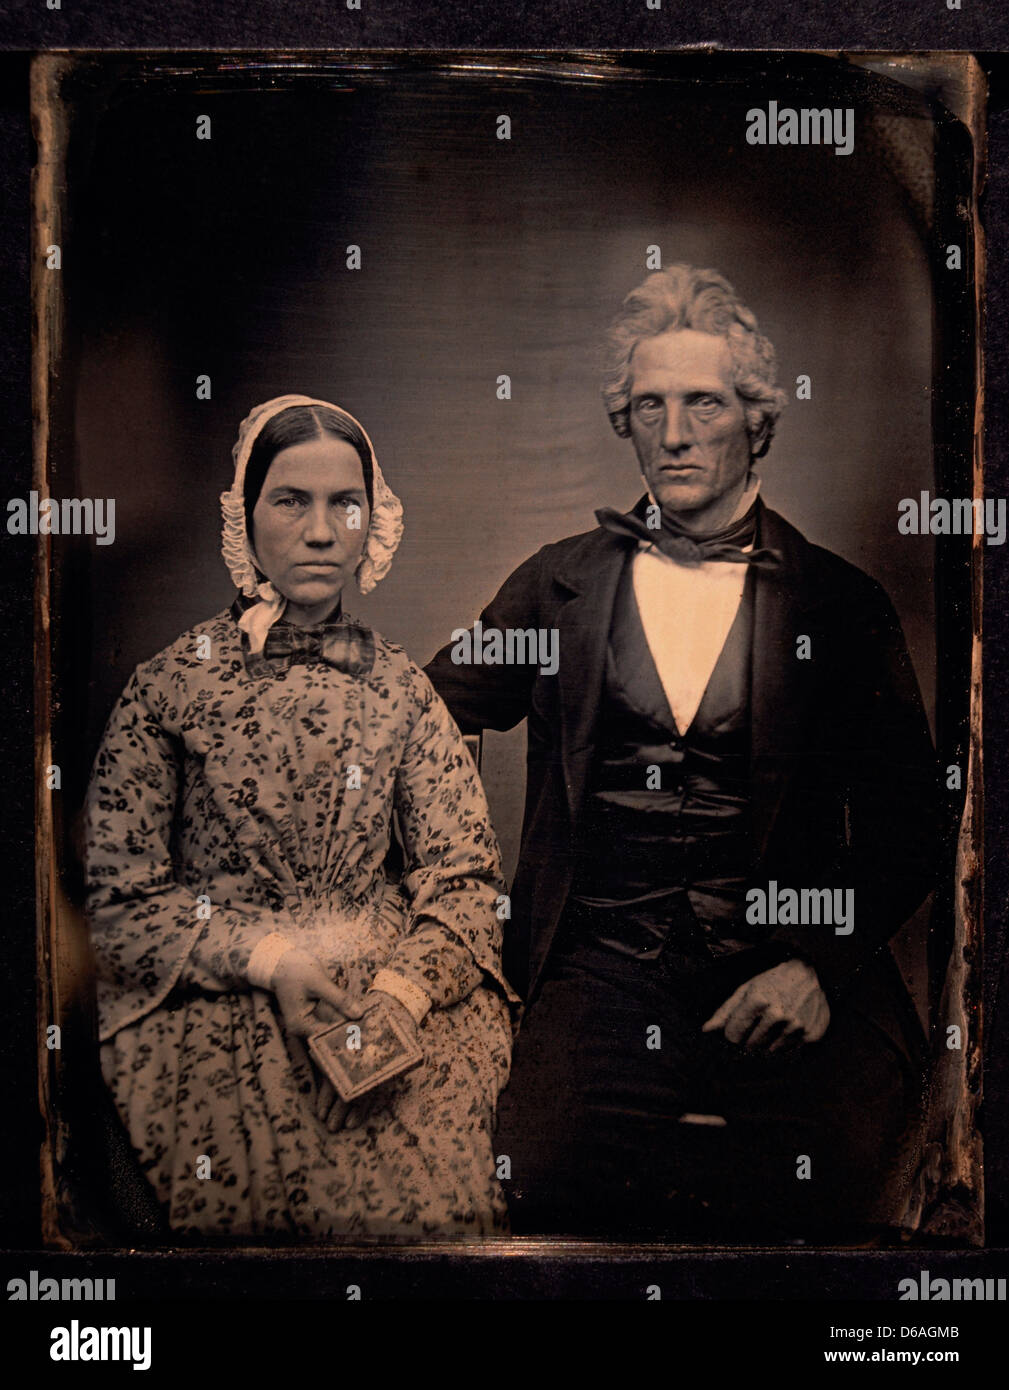 Couple Portrait, Daguerreotype, Circa 1850's - Stock Image